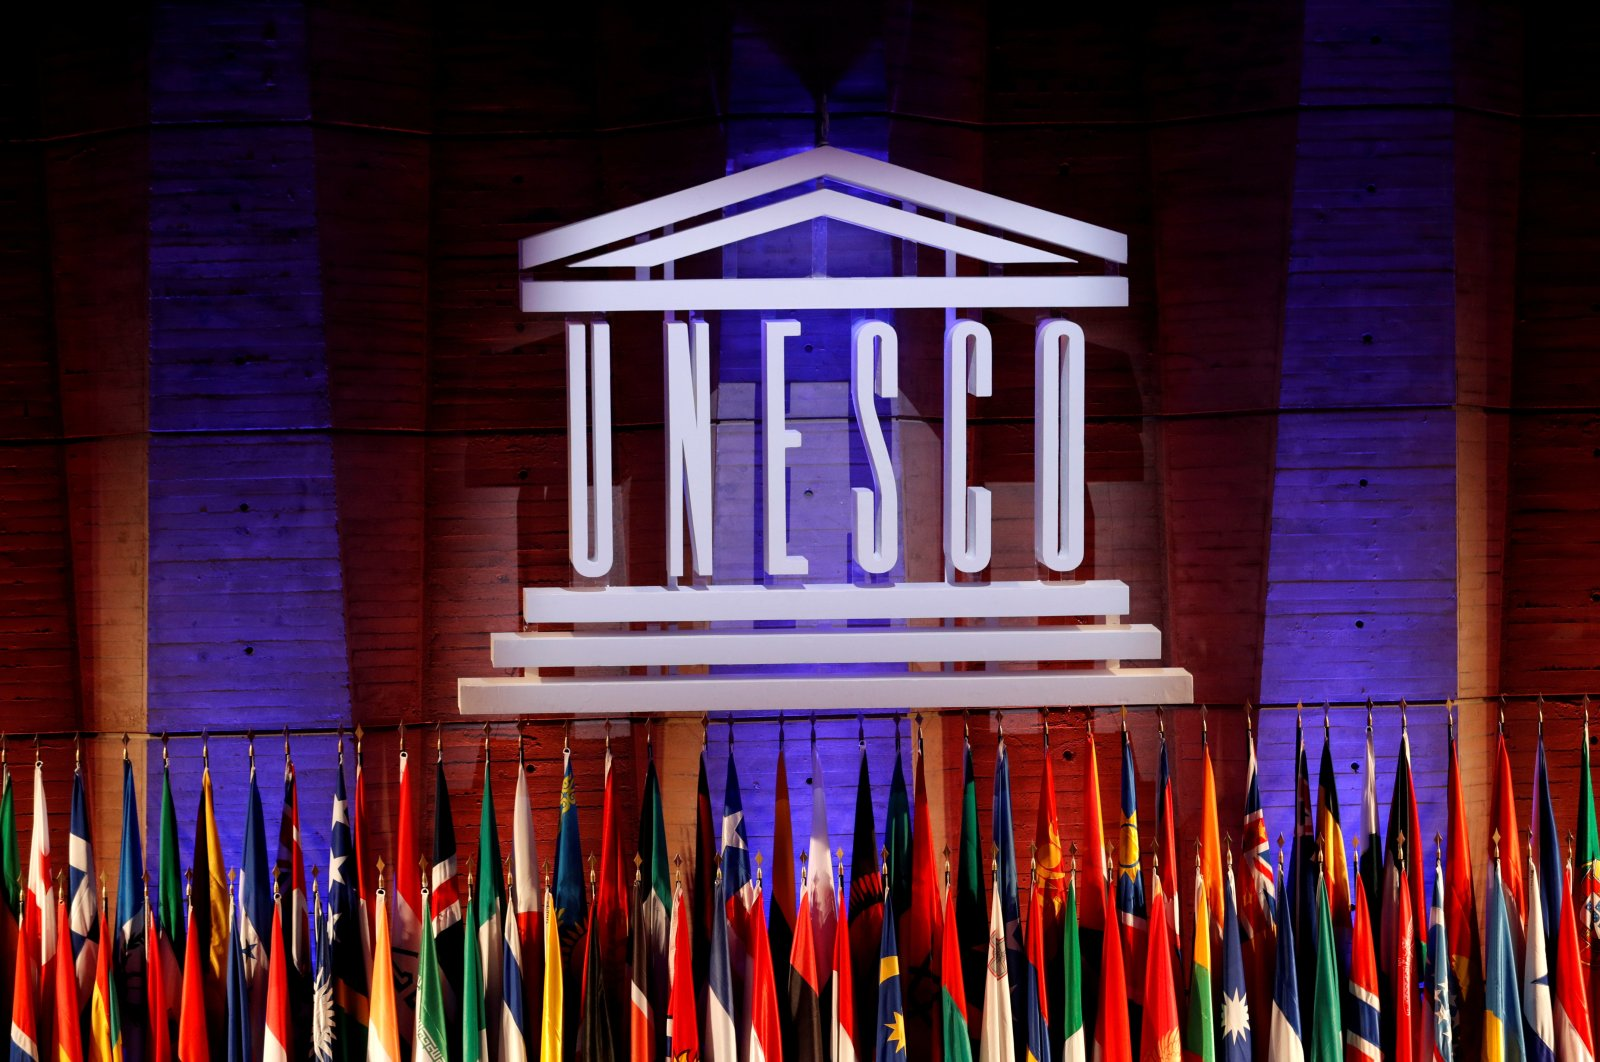 The UNESCO logo is seen during the opening of the 39th session of the General Conference of the United Nations Educational, Scientific and Cultural Organization (UNESCO) at their headquarters in Paris, France, Oct. 30, 2017. (Reuters Photo)